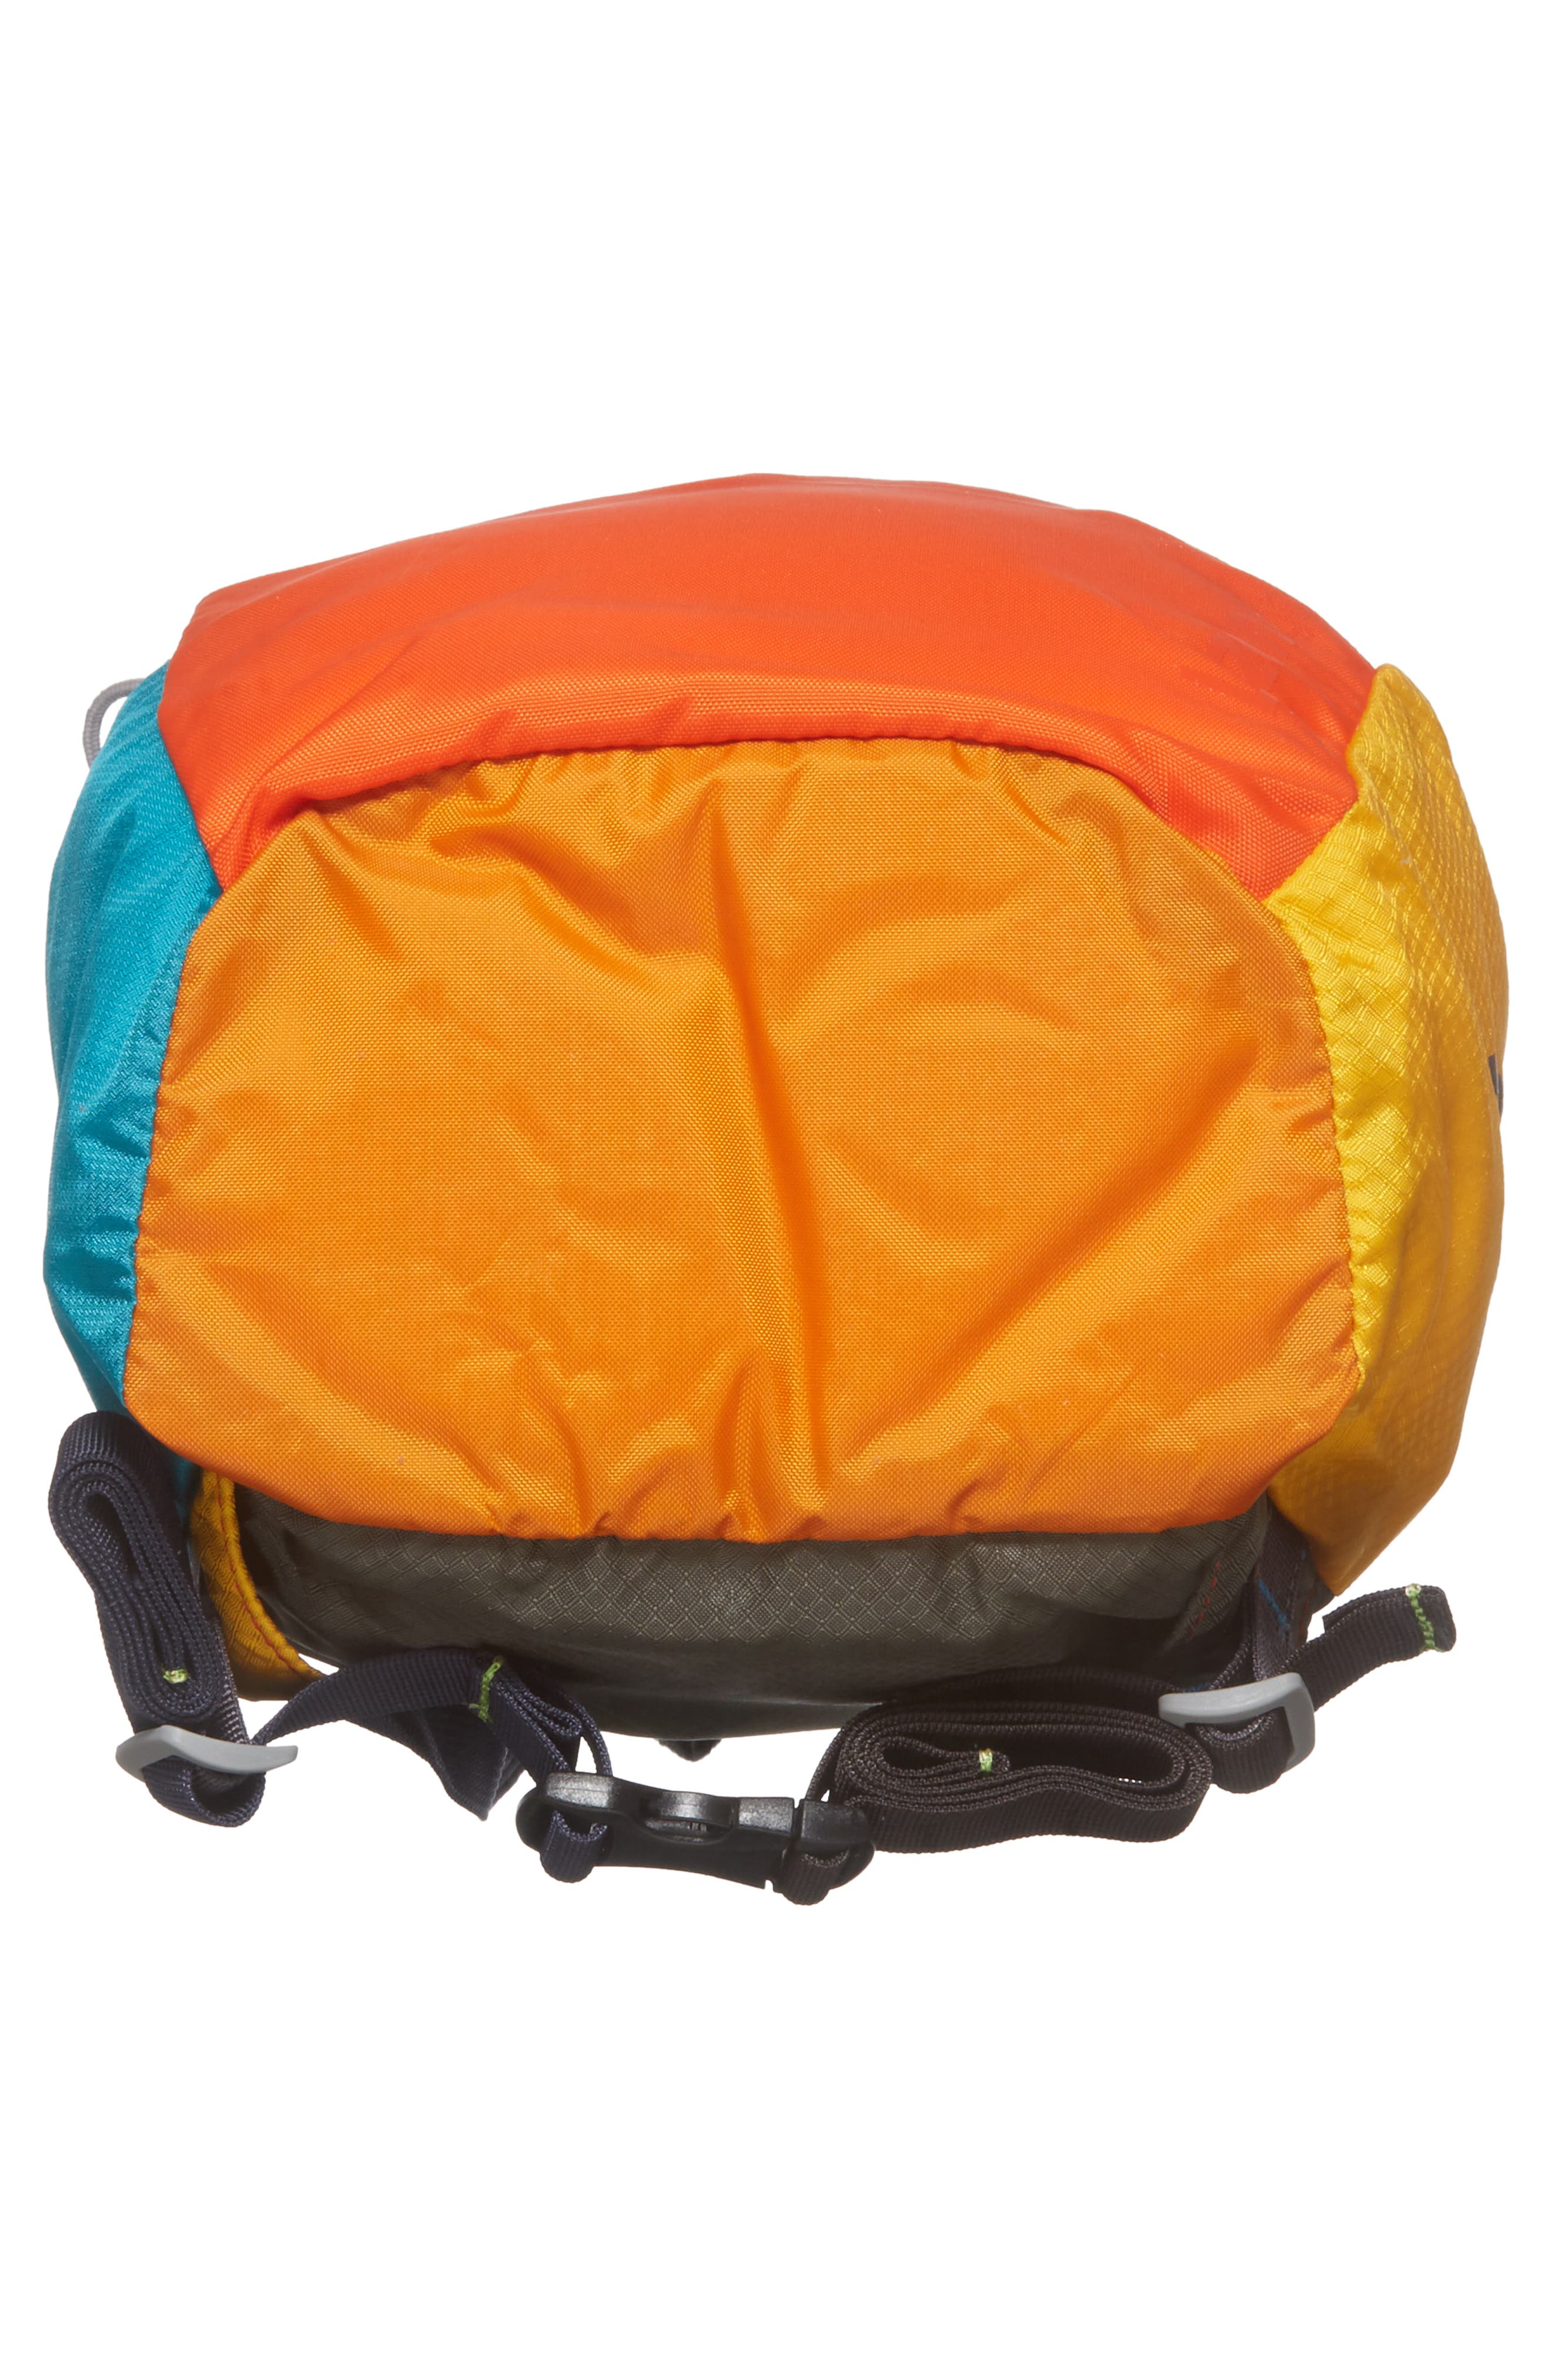 Luzon Del Día One of a Kind Ripstop Nylon Daypack,                             Alternate thumbnail 6, color,                             ASSORTED